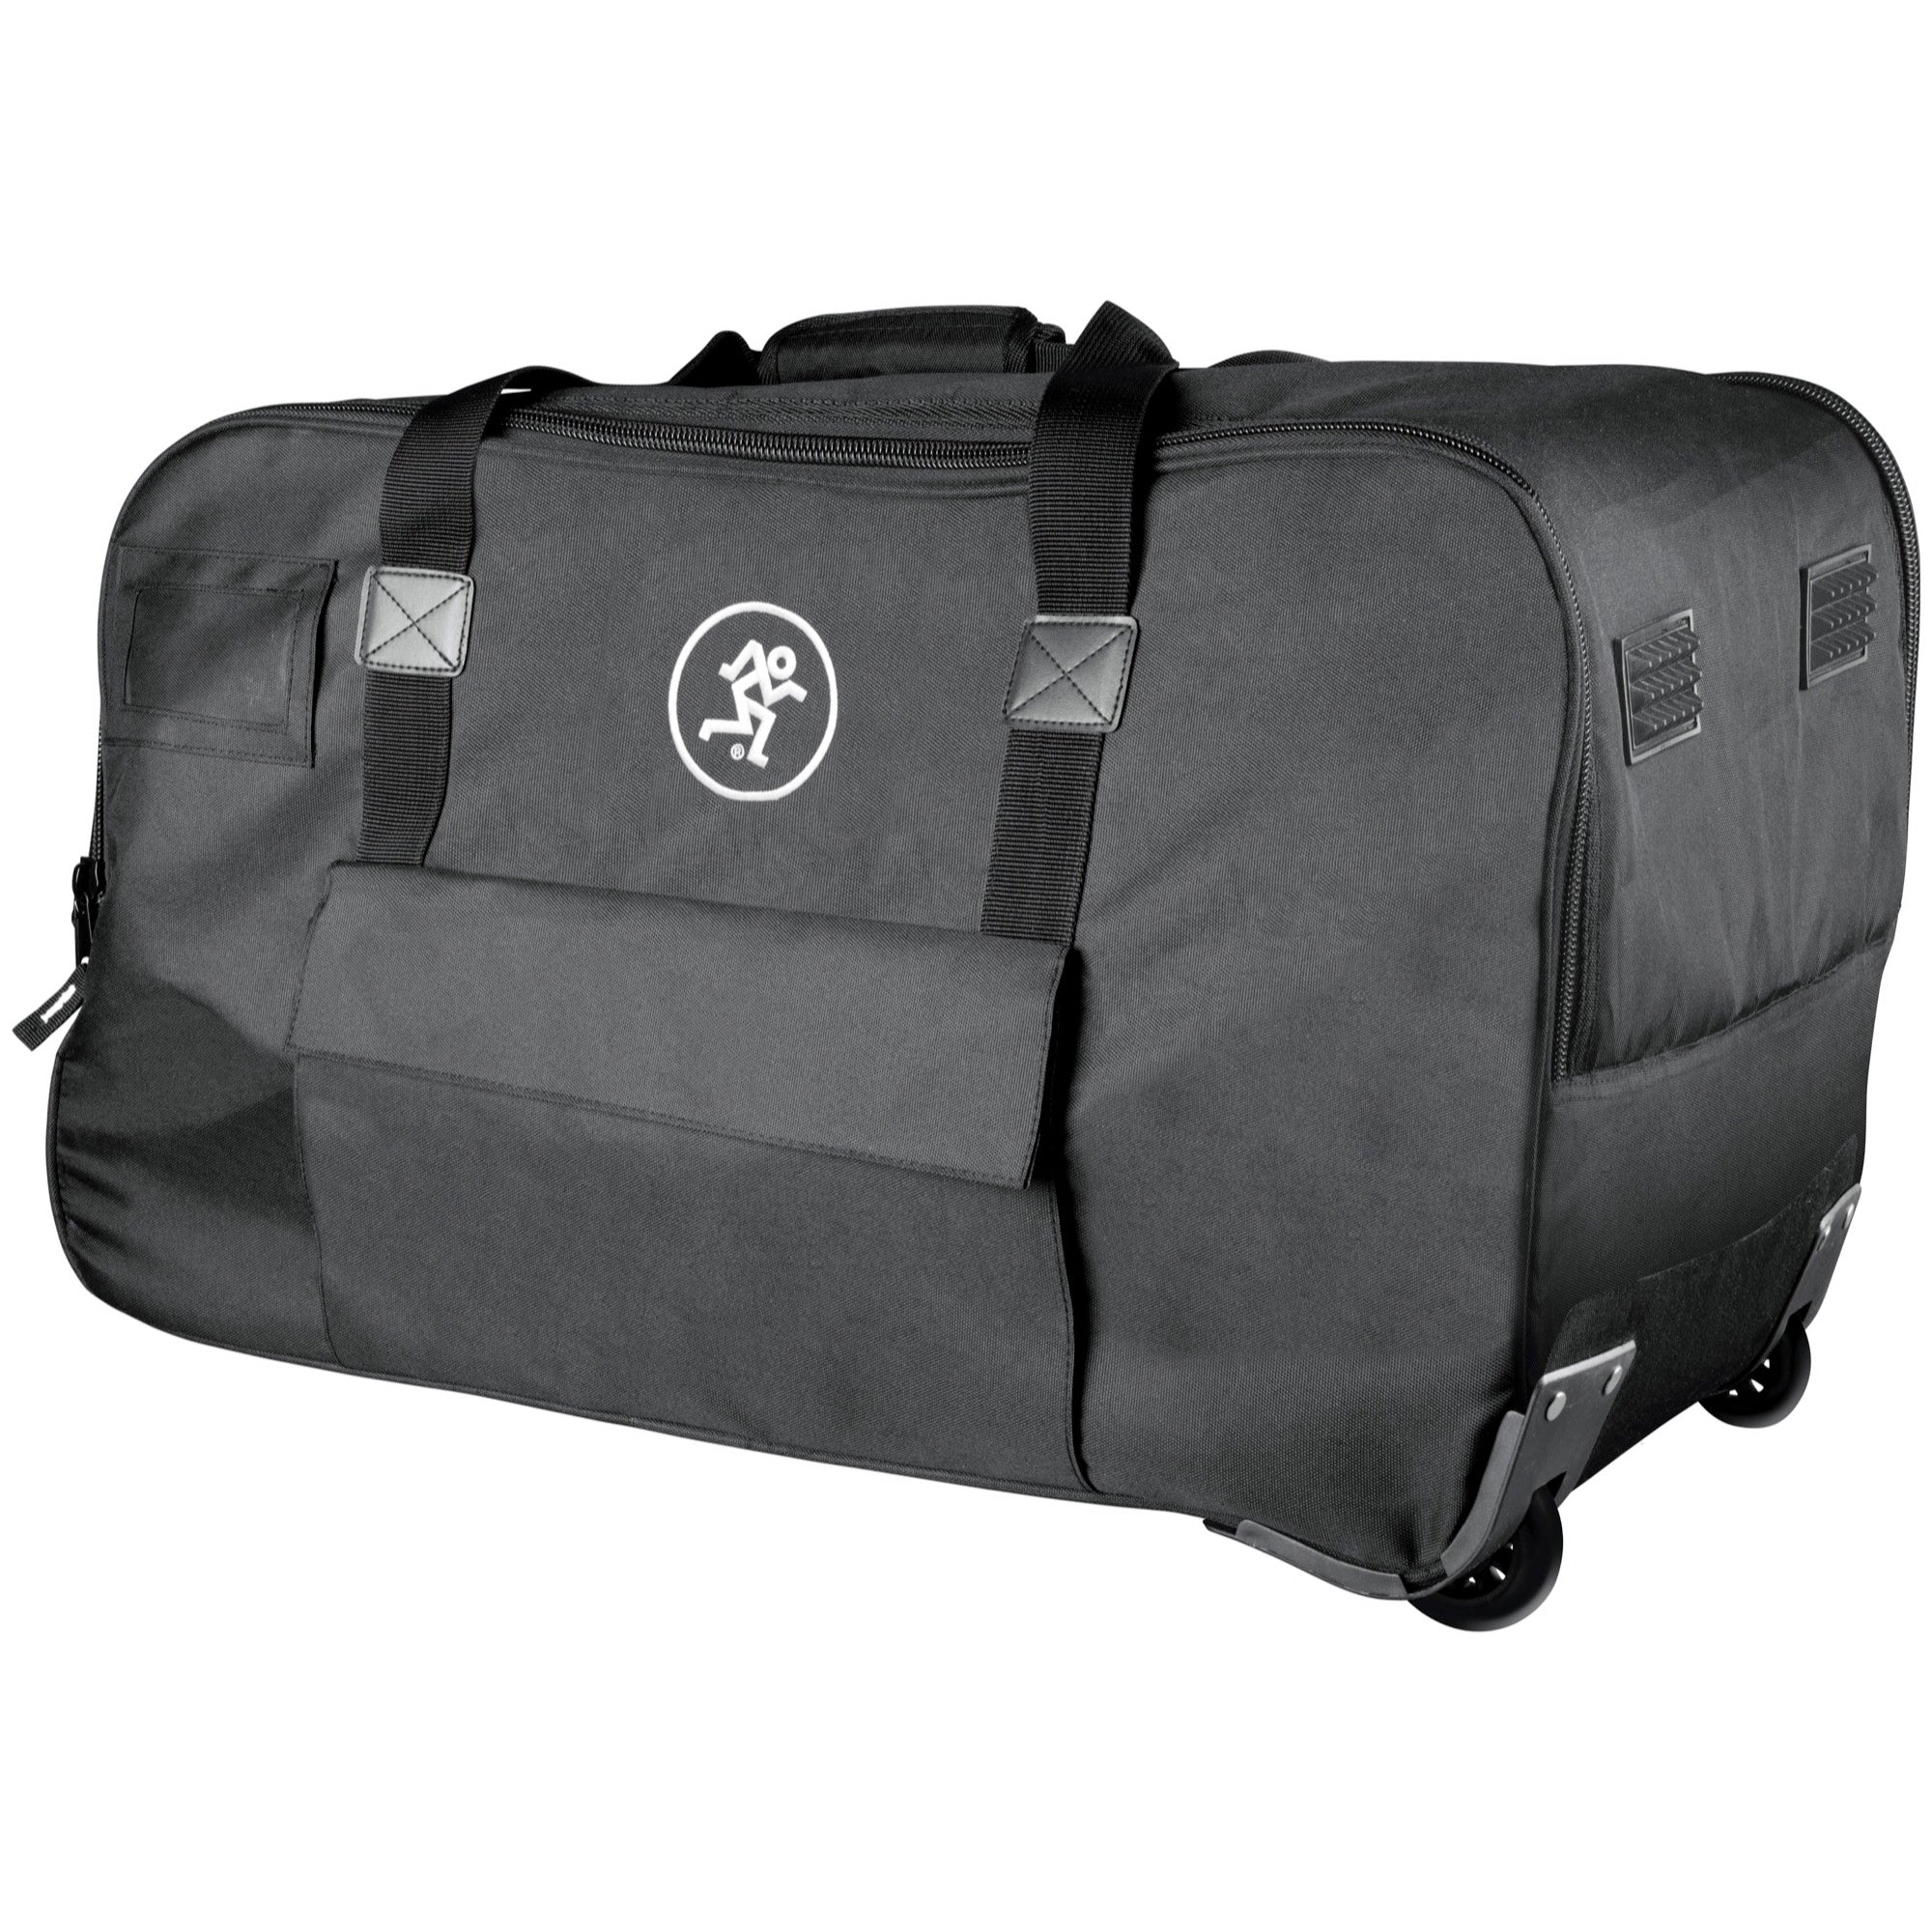 Mackie Rolling Speaker Bag for Thump Speakers, For Thump15A / Thump15BST